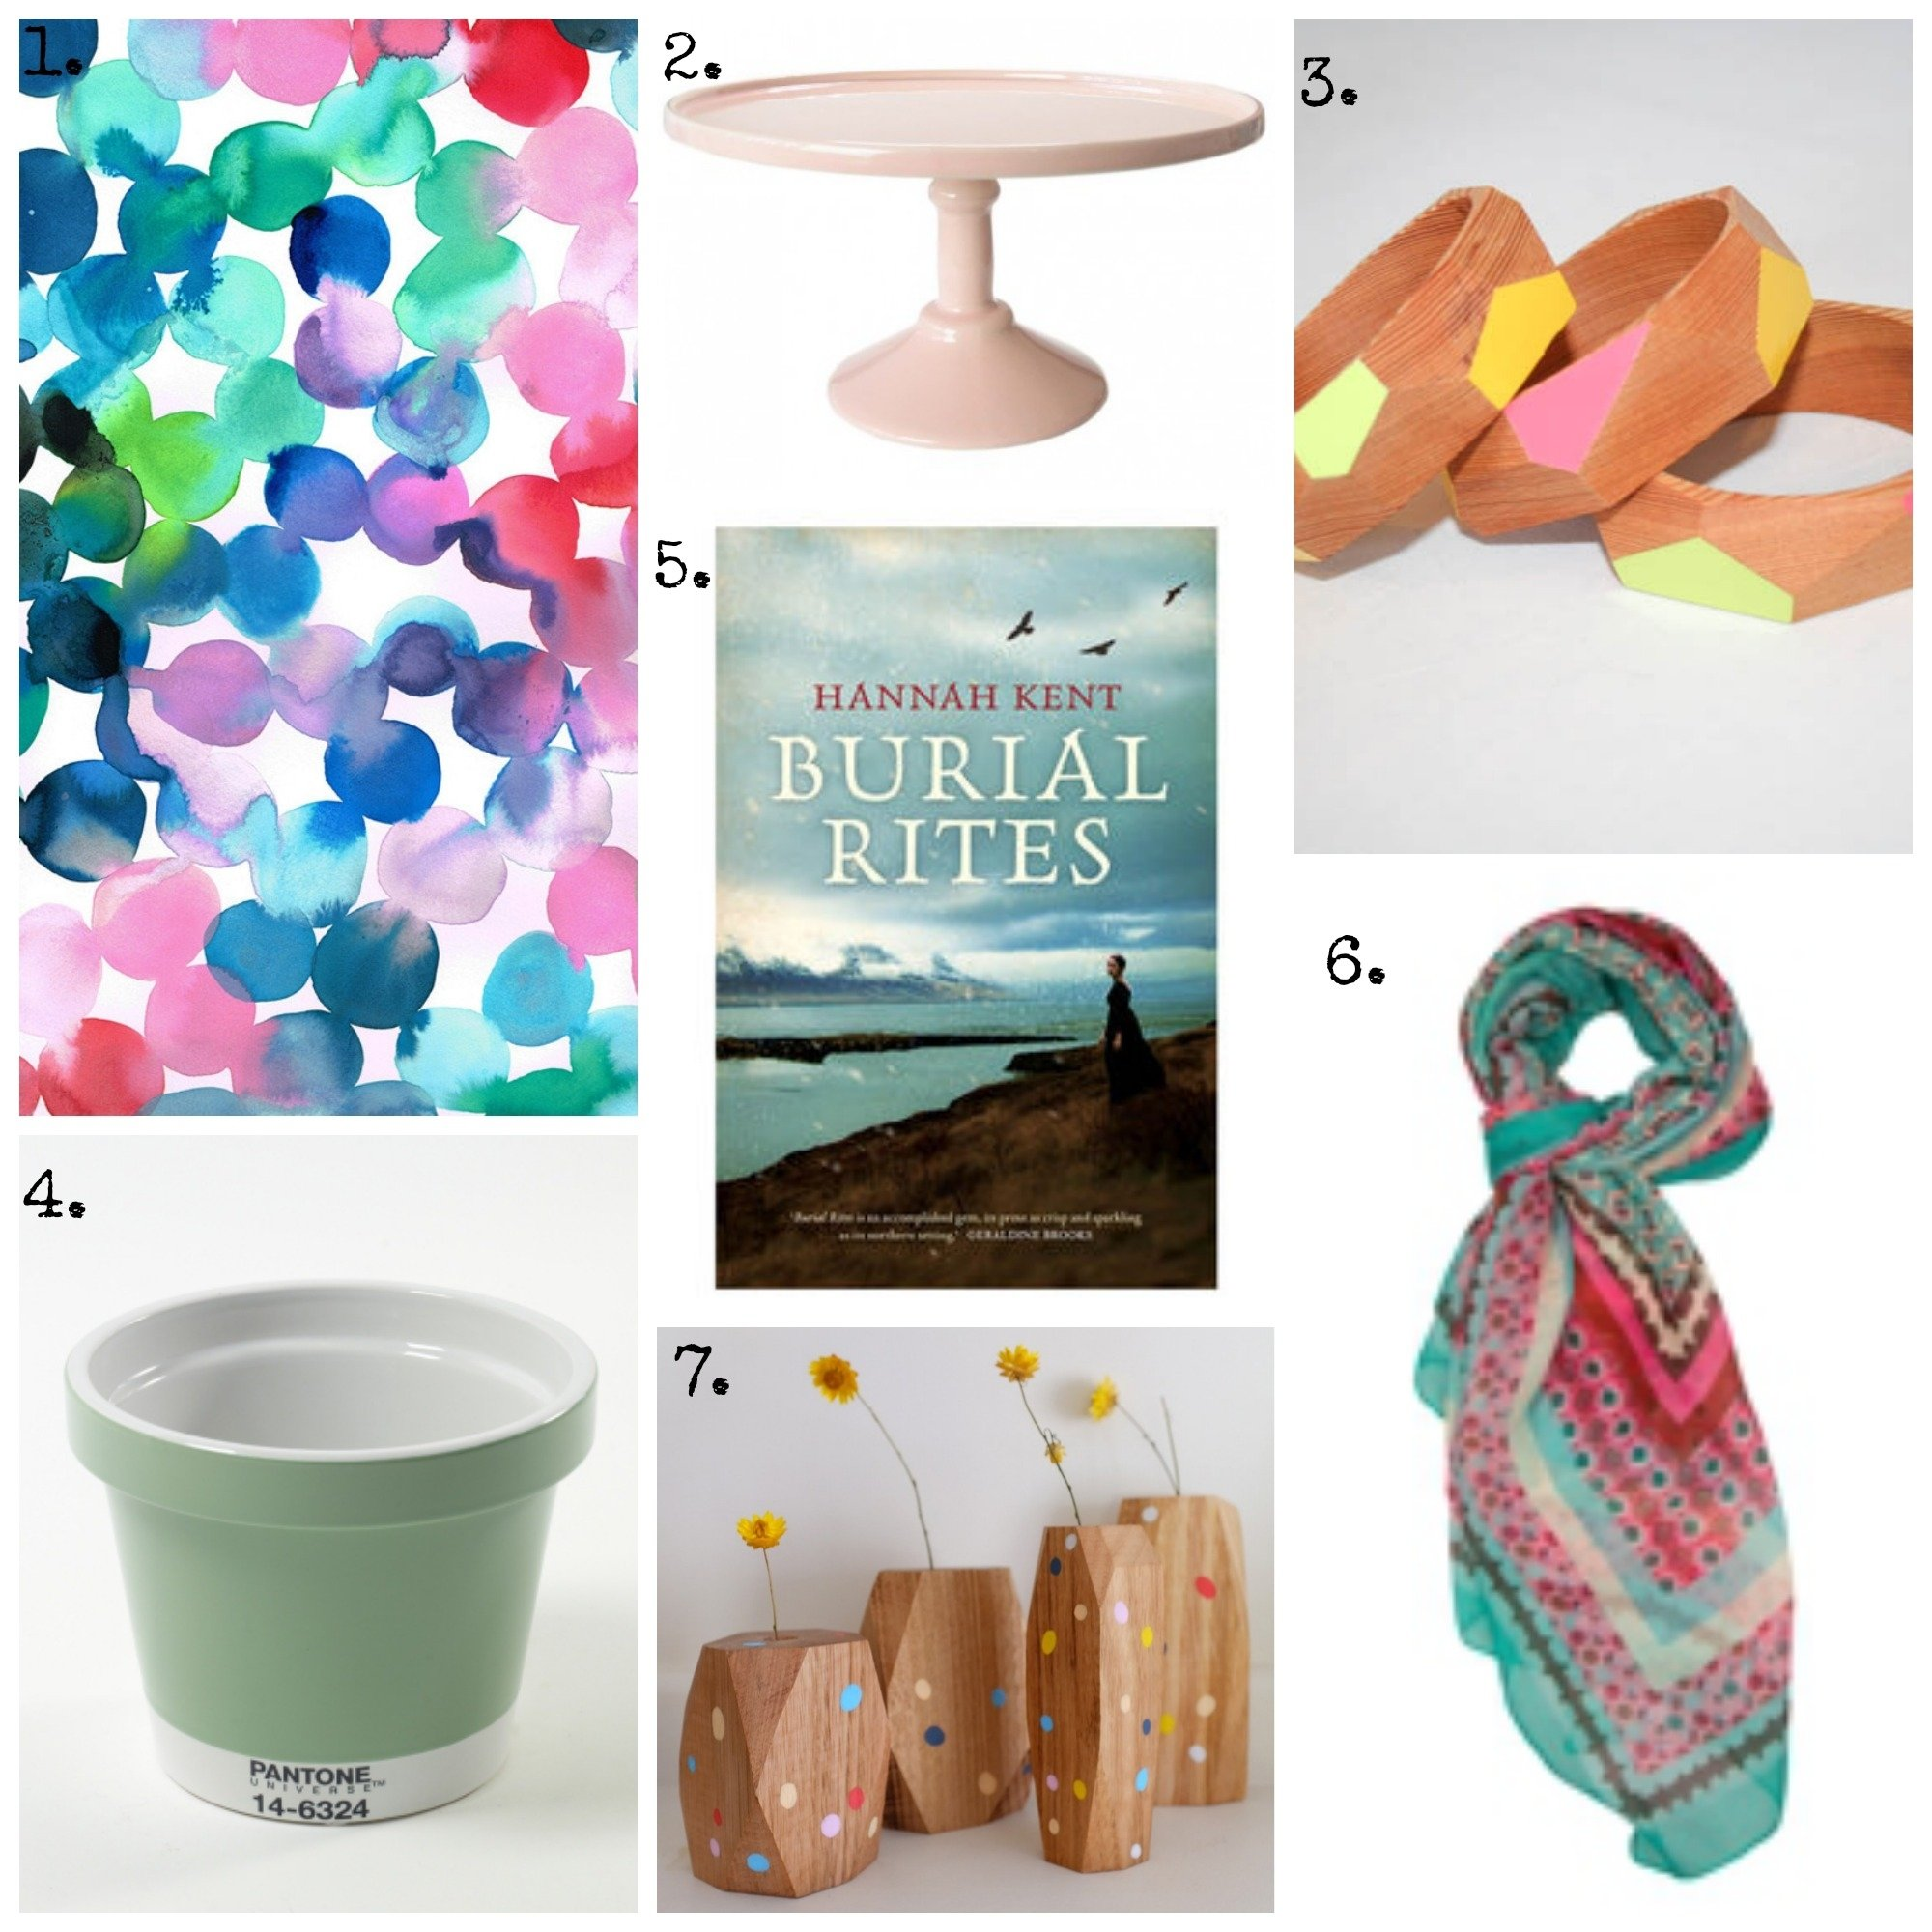 10 Pretty Birthday Gifts Ideas For Her the top 7 gorgeous gift ideas for women style shenanigans 11 2021